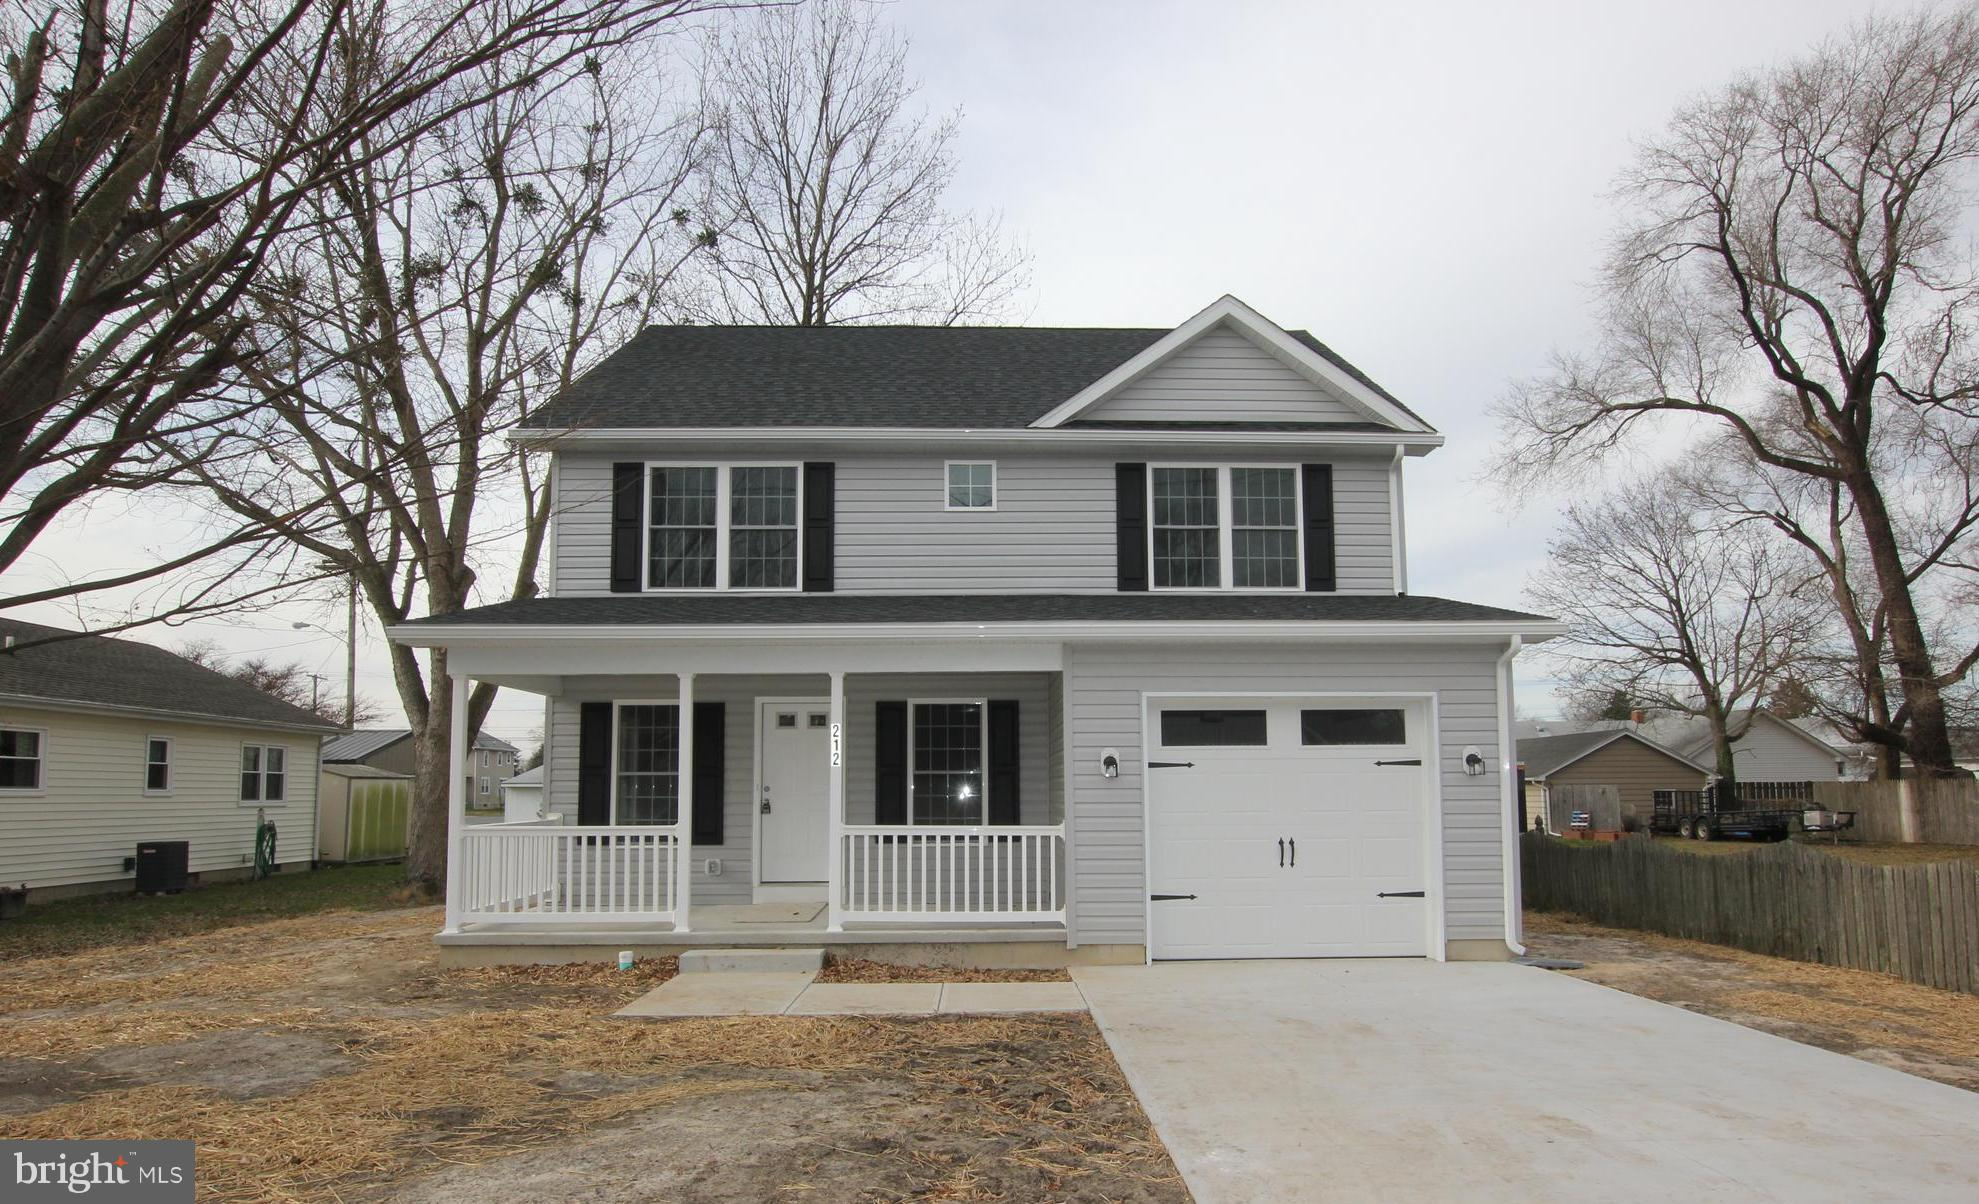 Brand New Construction home located in the town limits of Milford. The home features clean, modern f